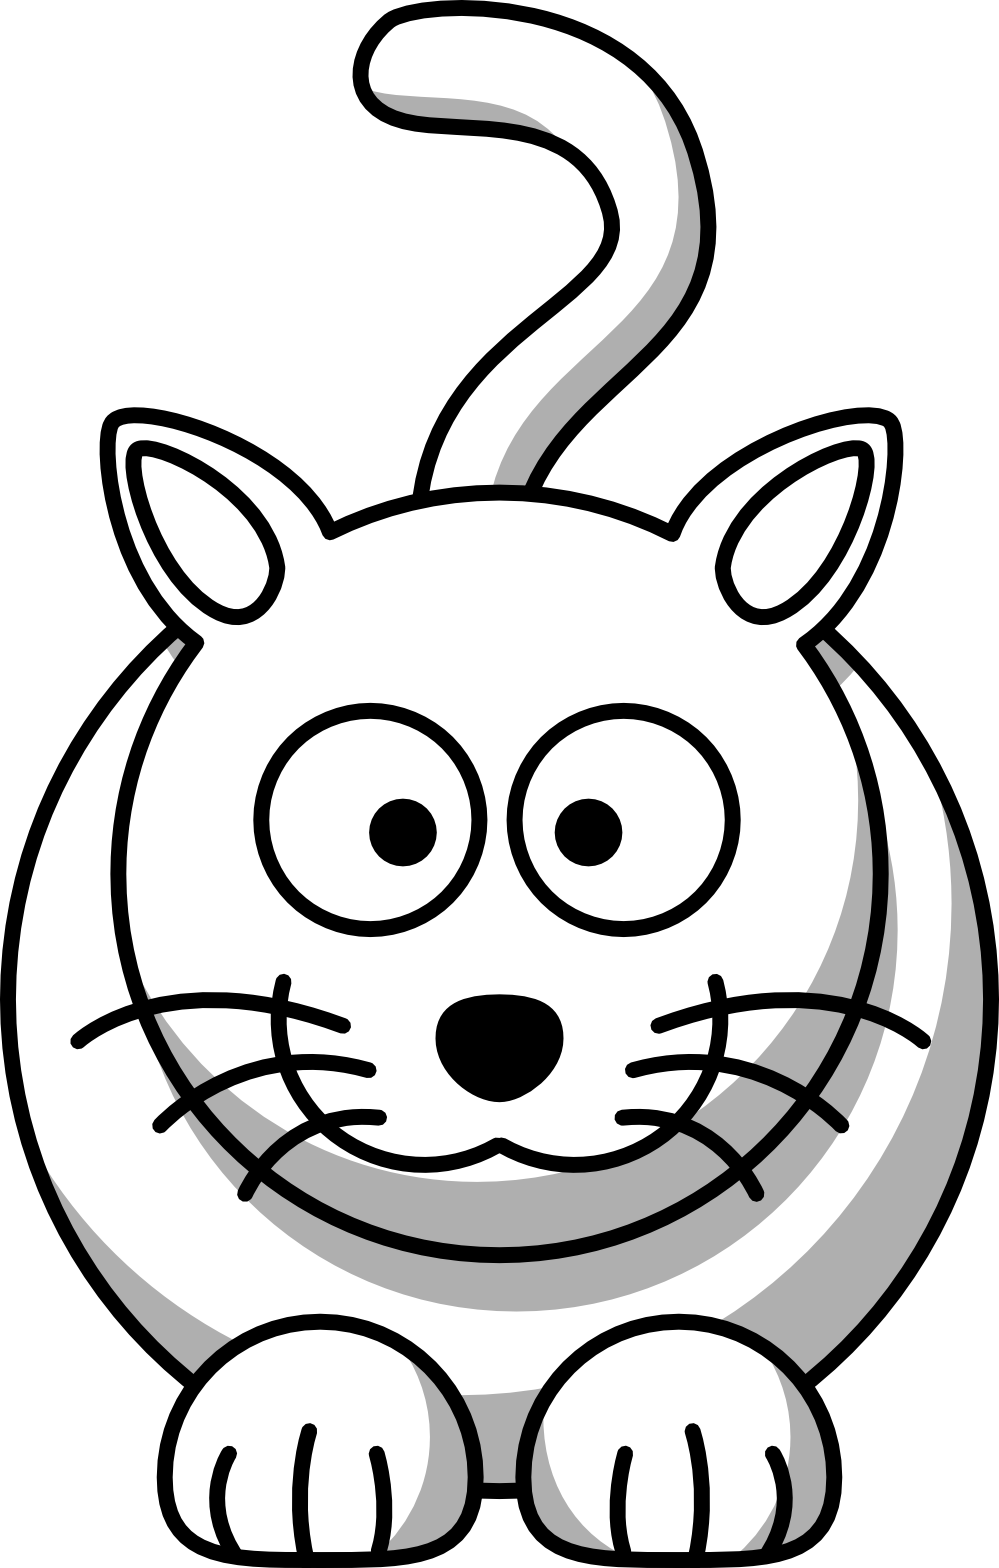 Cool cat black and white clipart picture free stock clipartist.net » Clip Art » cat black white line animal SVG picture free stock